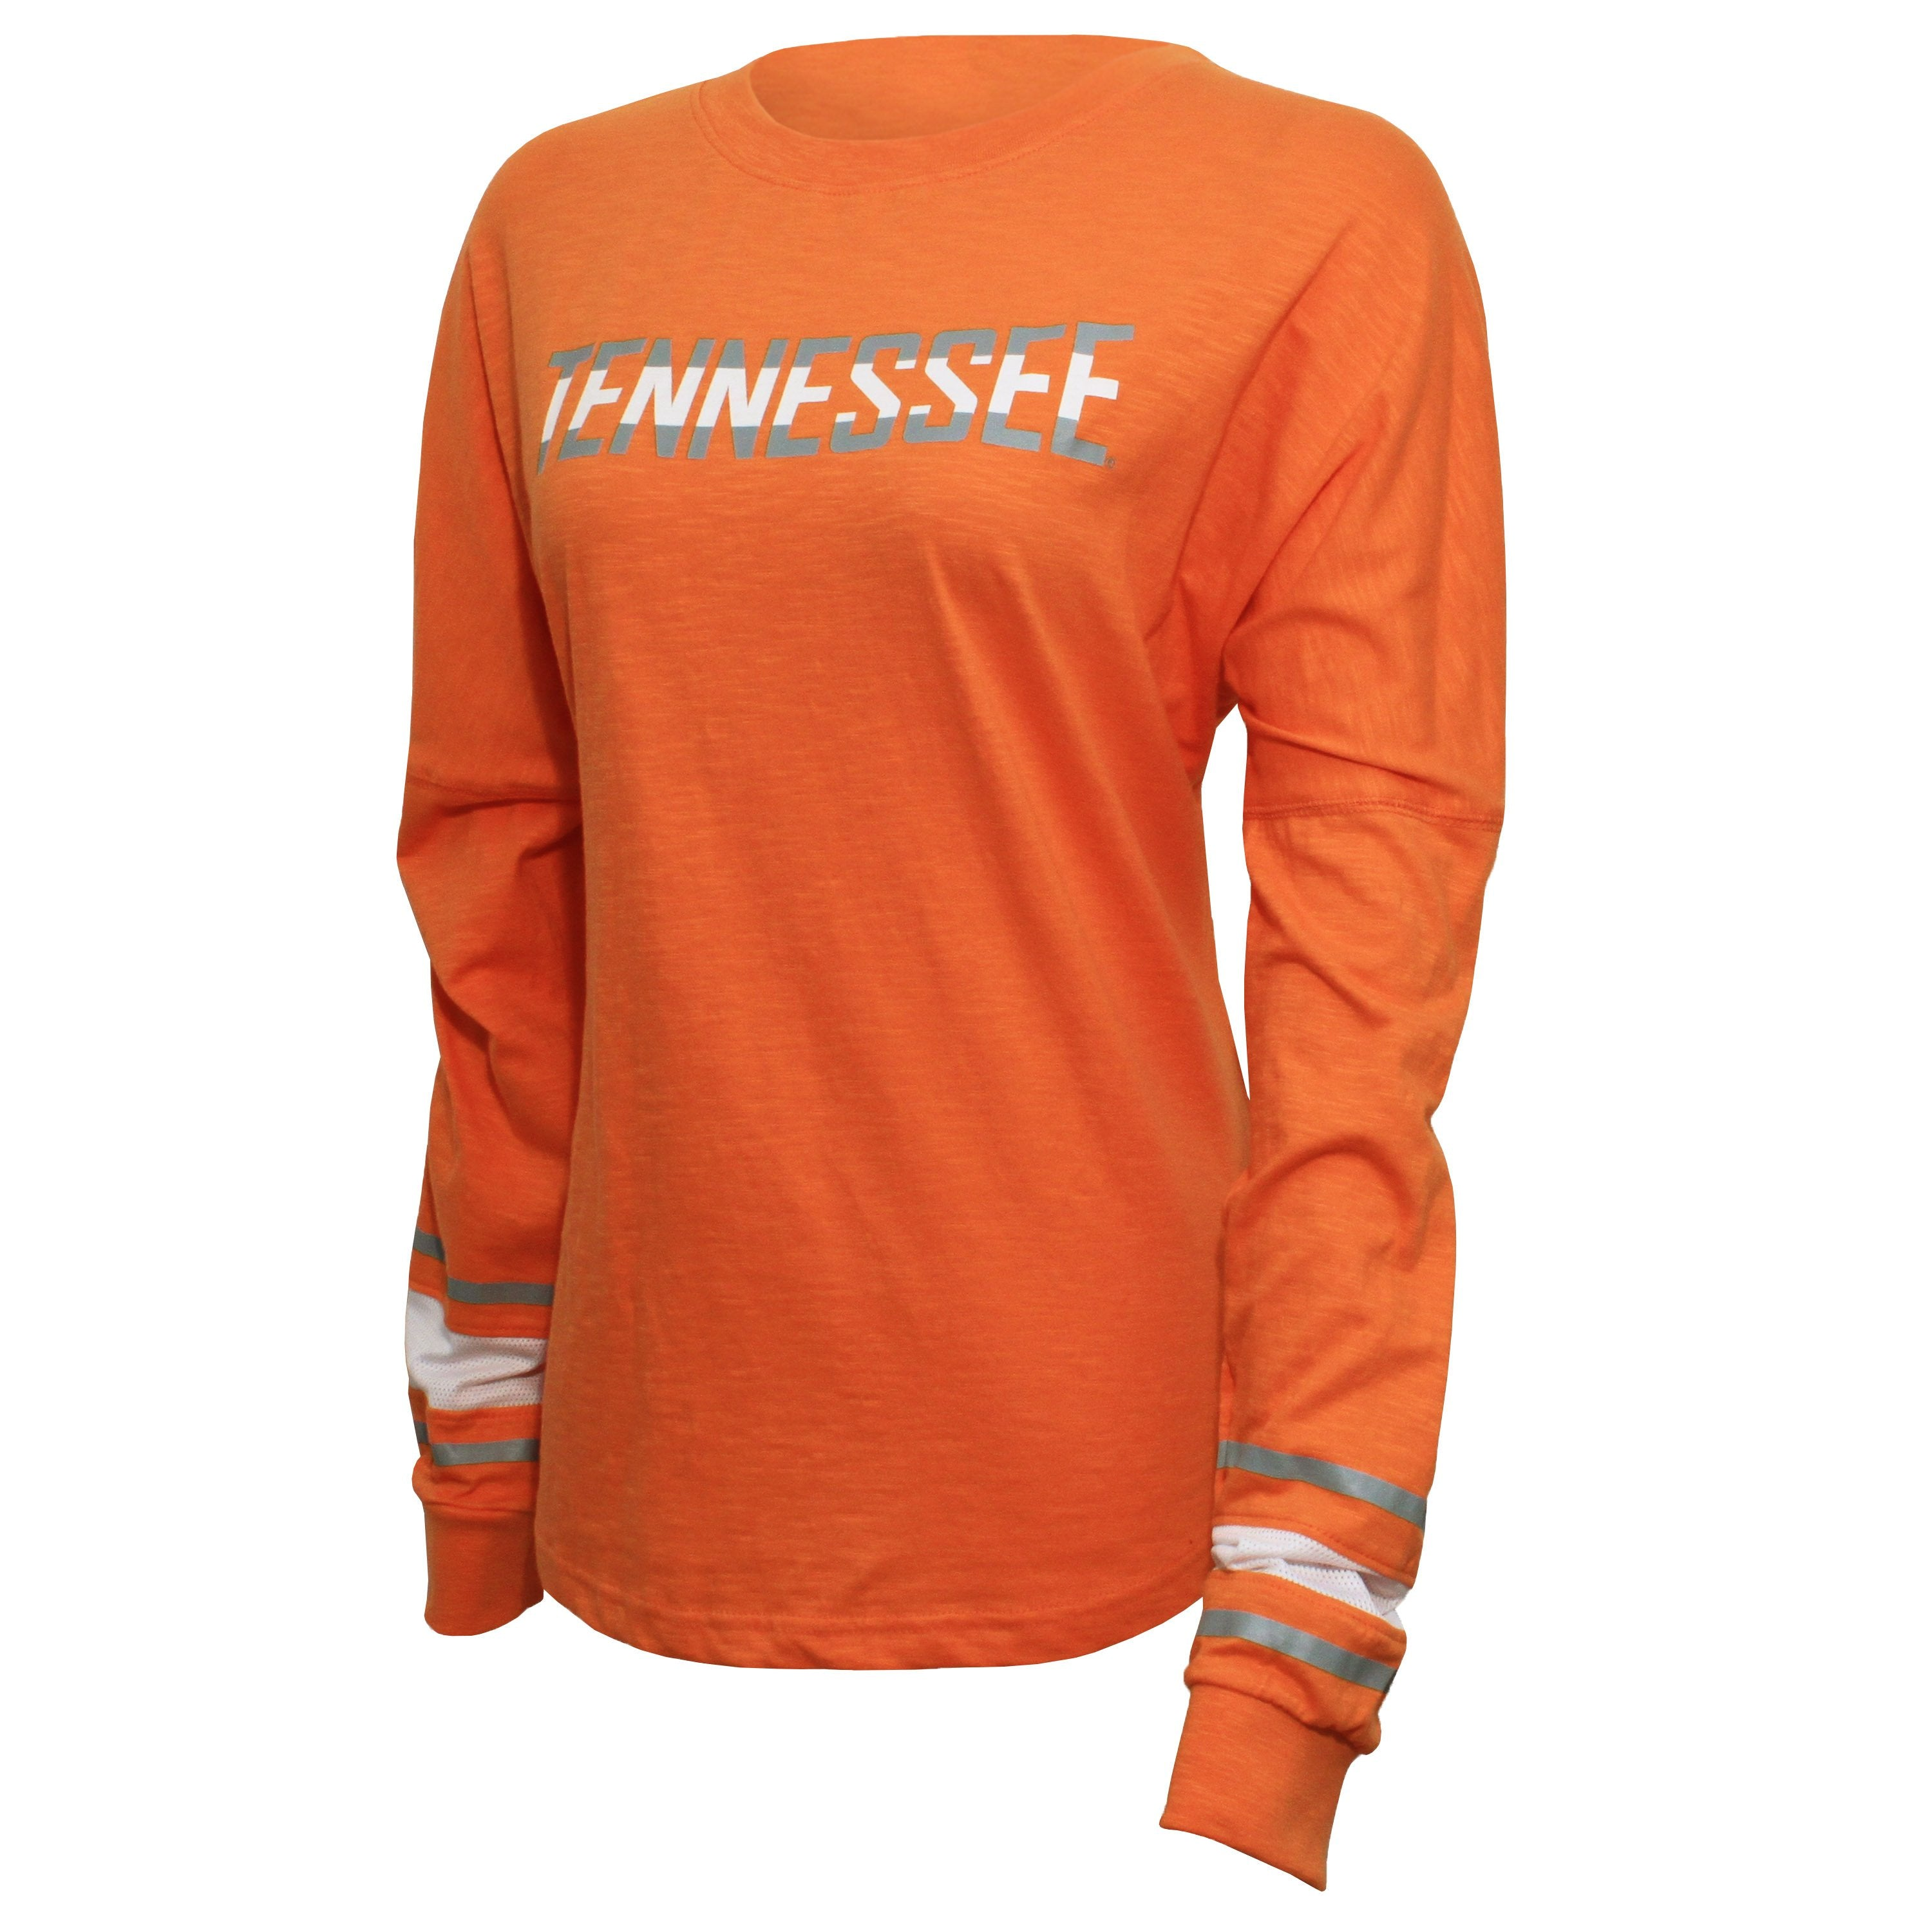 Campus Specialties Tennessee Women's Tennessee Orange Striped Sleeve Top